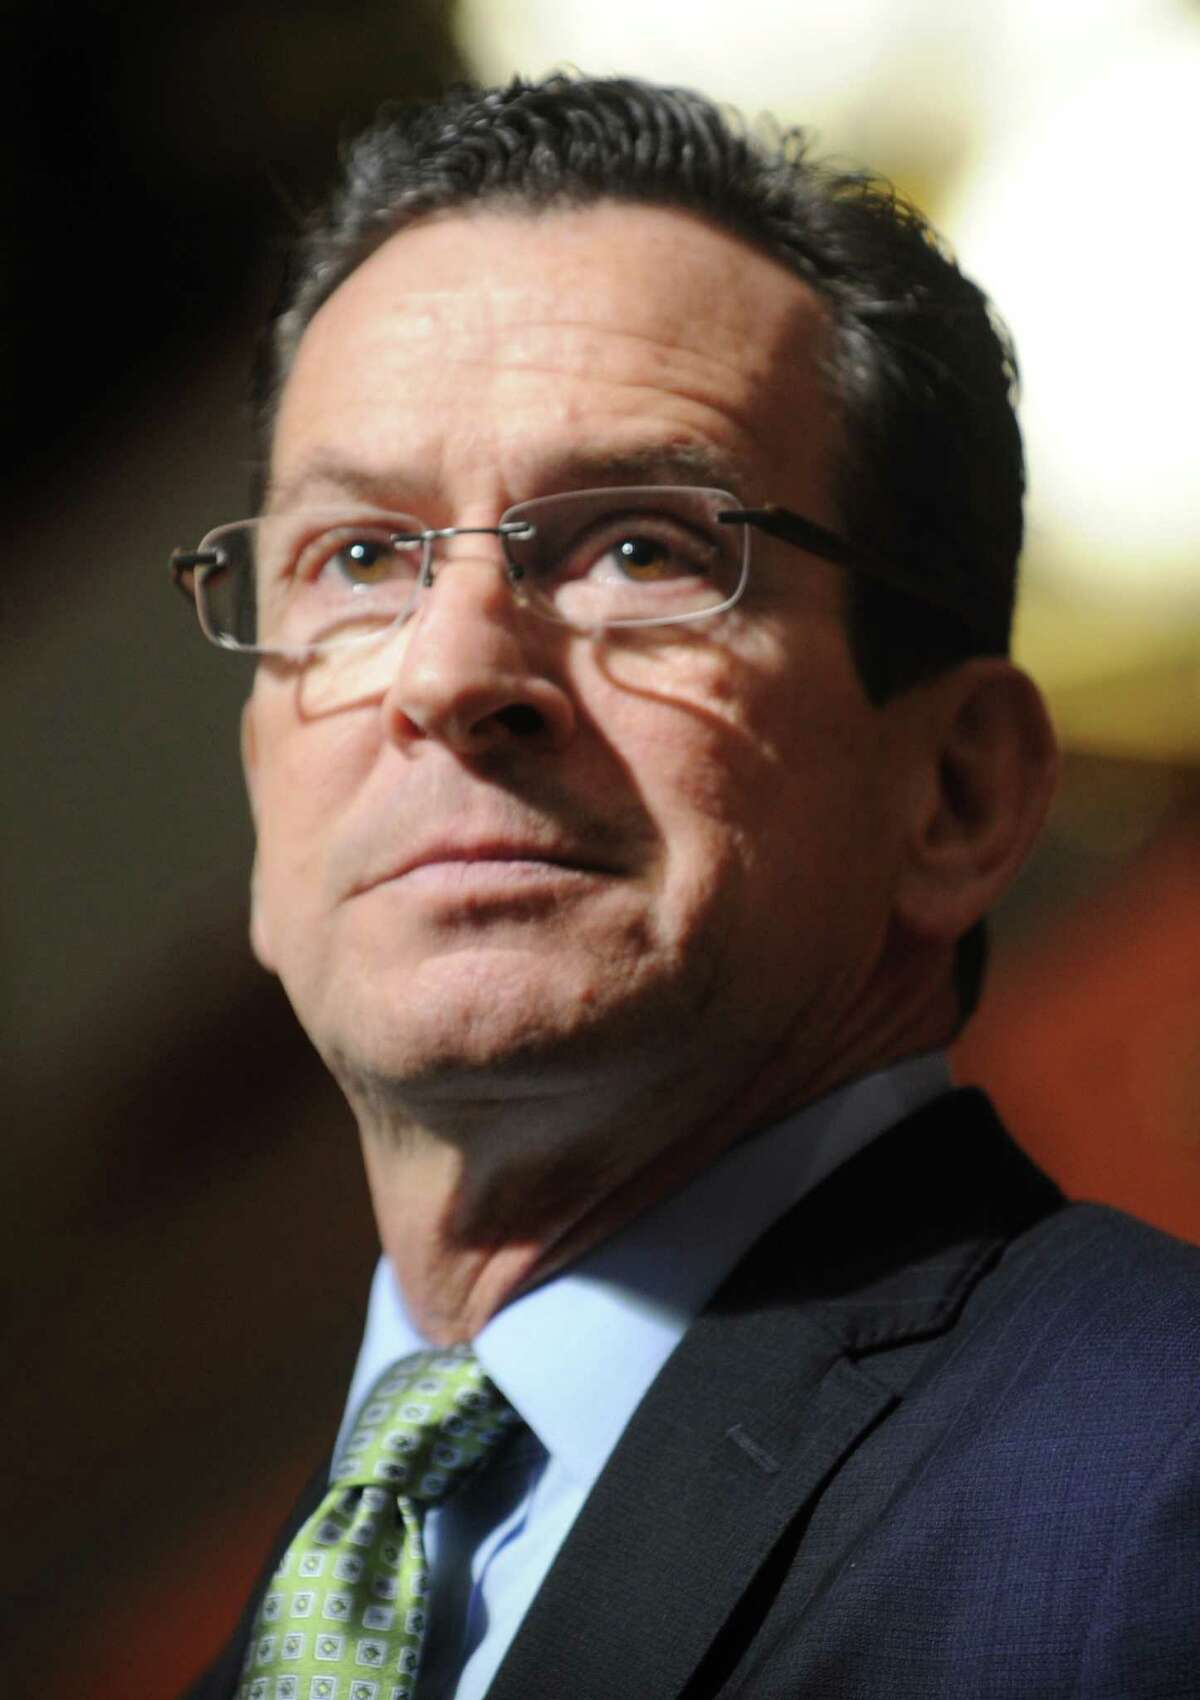 Bail reform, the remaining half of Gov. Dannel P. Malloy's proposed Second Chance Society, was in danger of dying Thursday before a special session of the state House of Representatives.